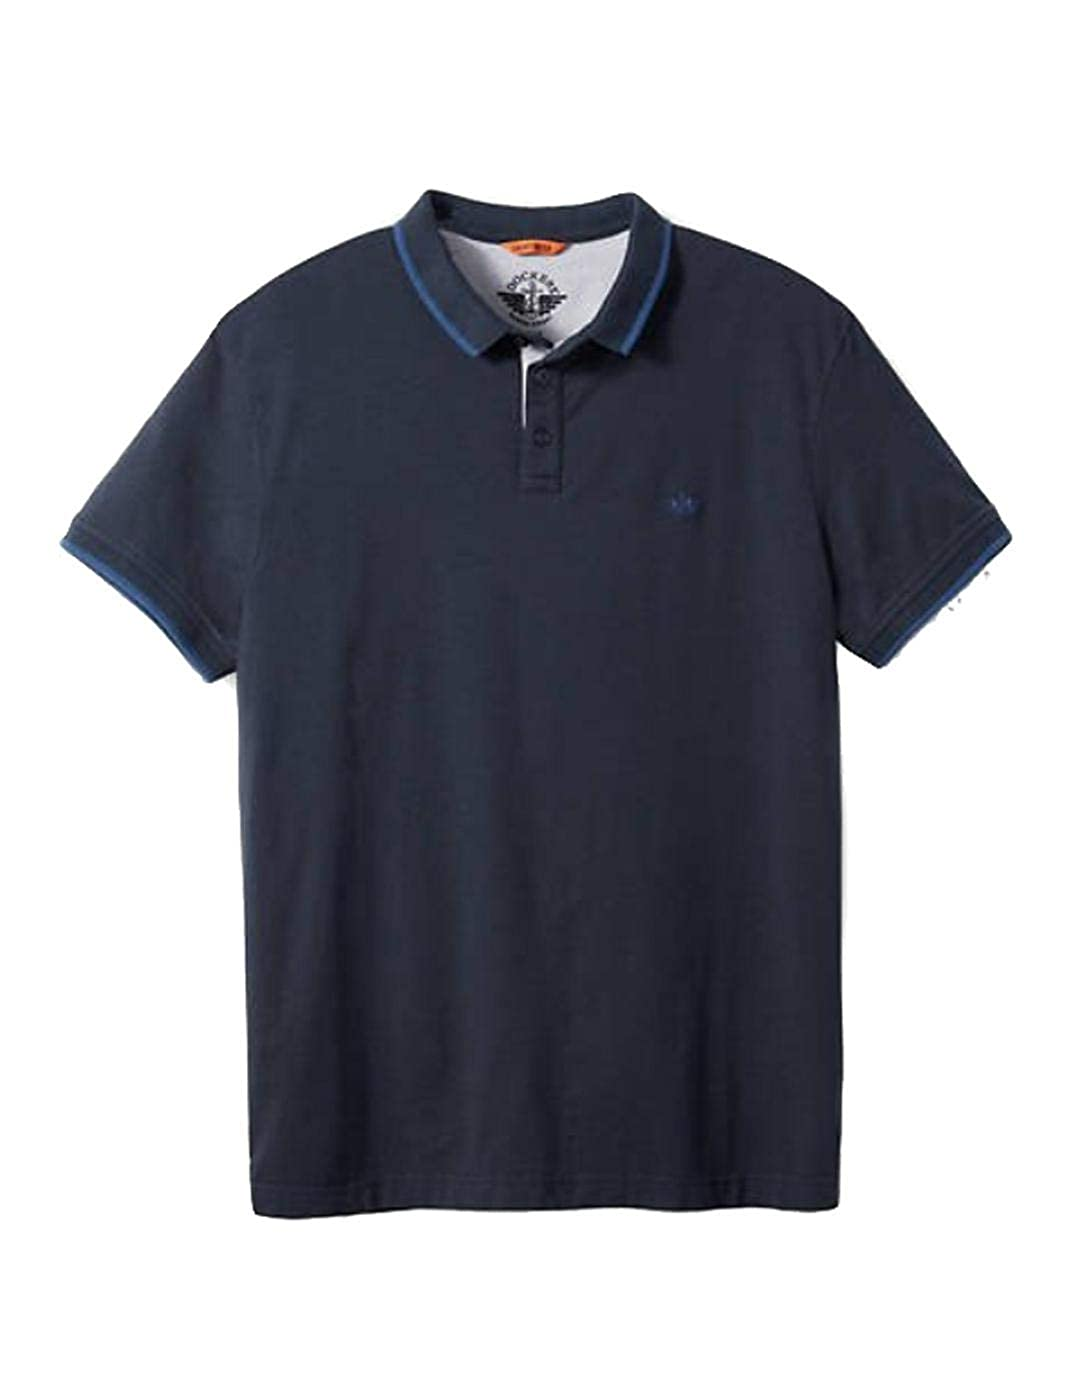 dockers Polo 360 Marino: Amazon.es: Ropa y accesorios